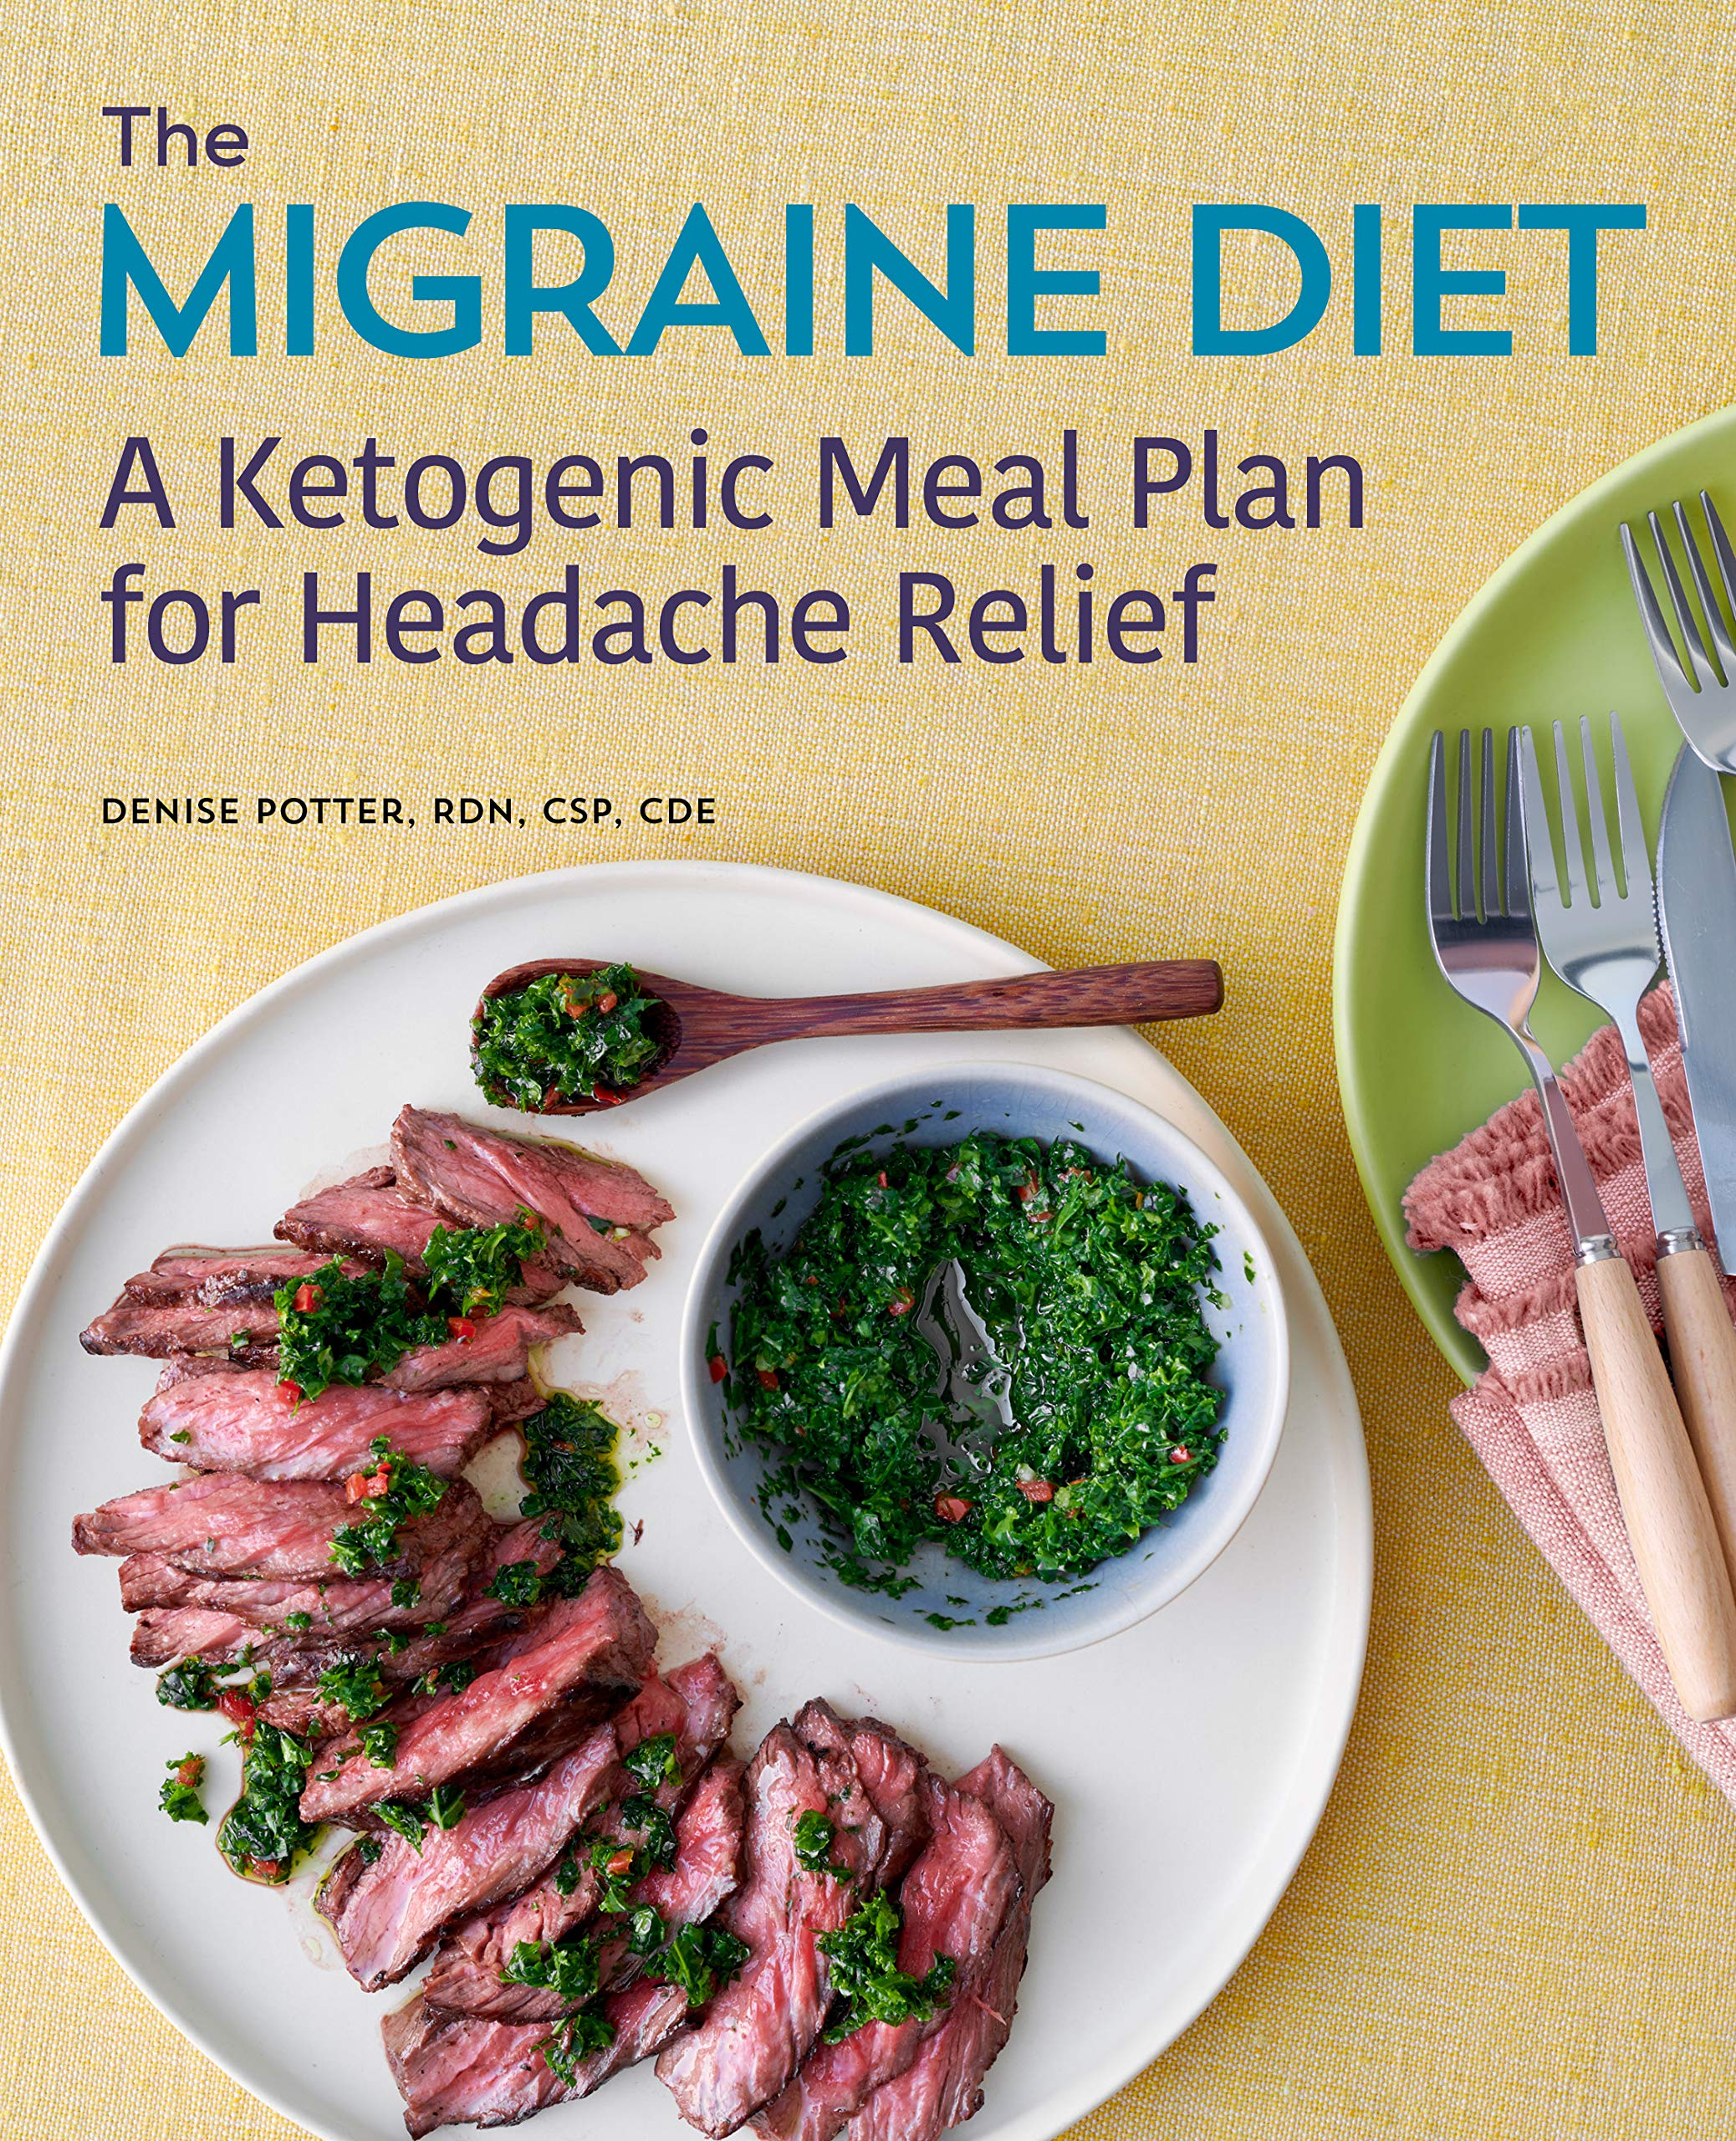 migraines and keto diet